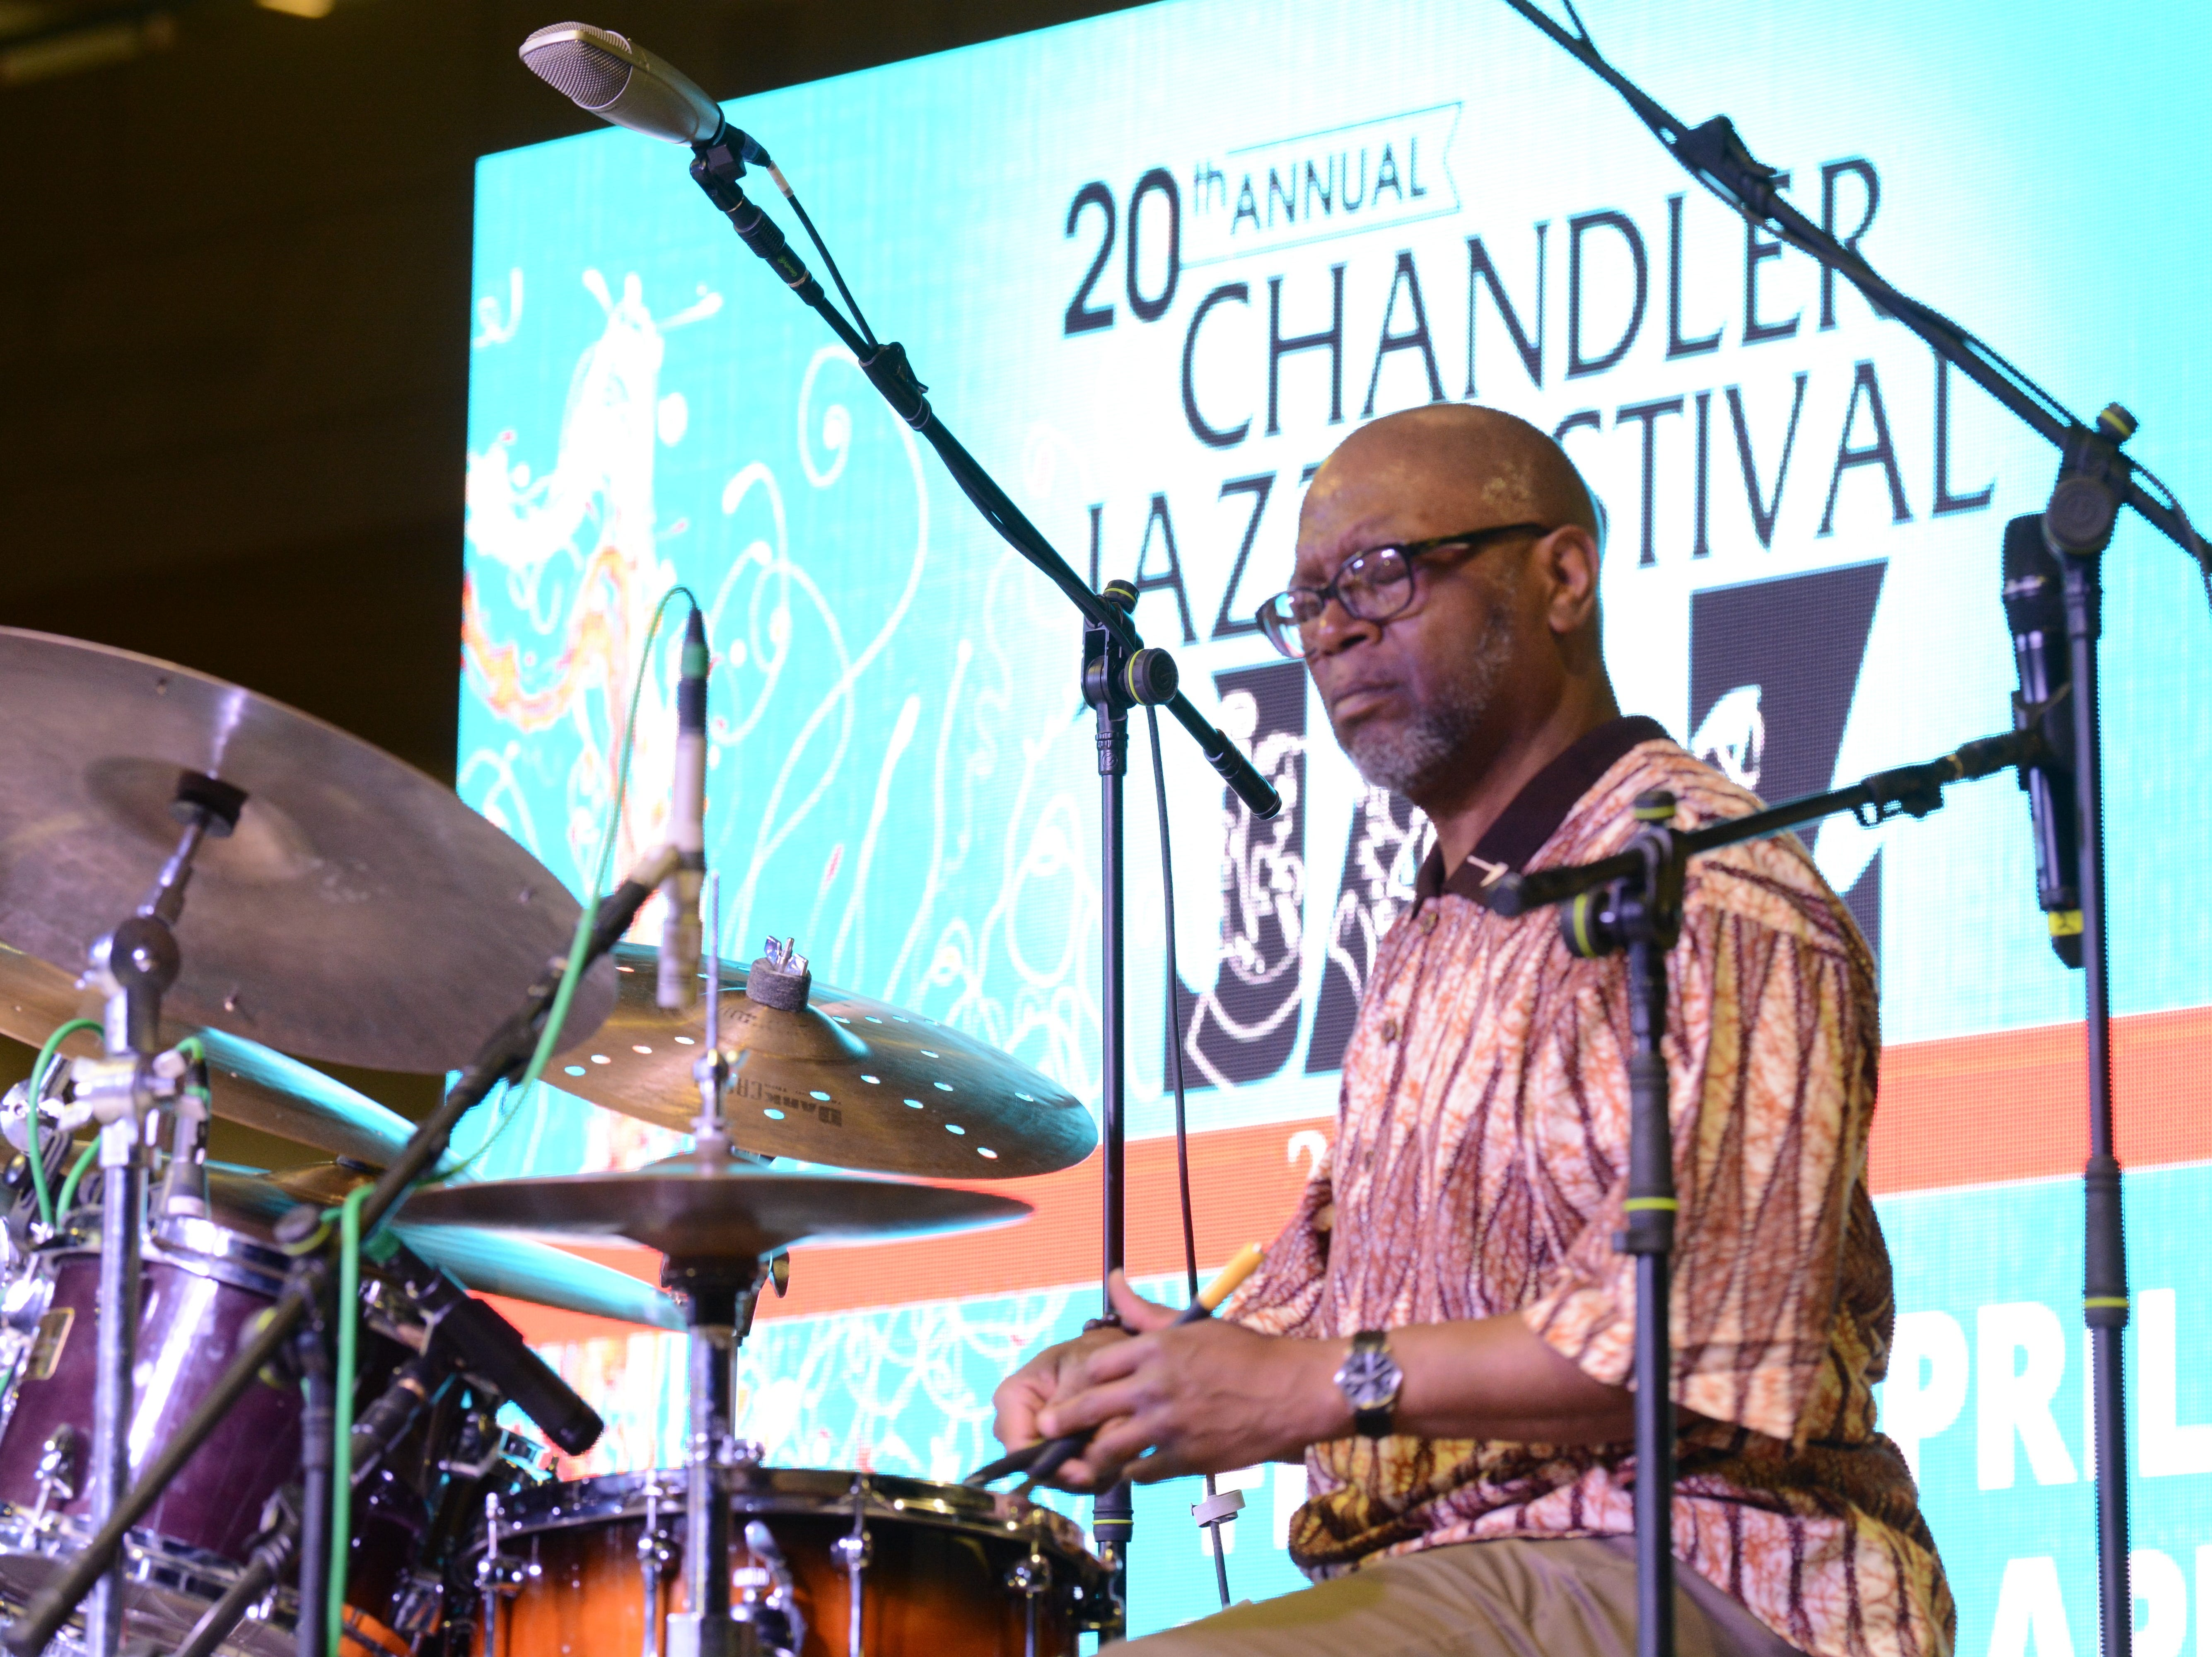 Drummer Lewis Nash performs with the Dizzy Gillespie All-Star Band at the Chandler Jazz Festival on April 6, 2019.